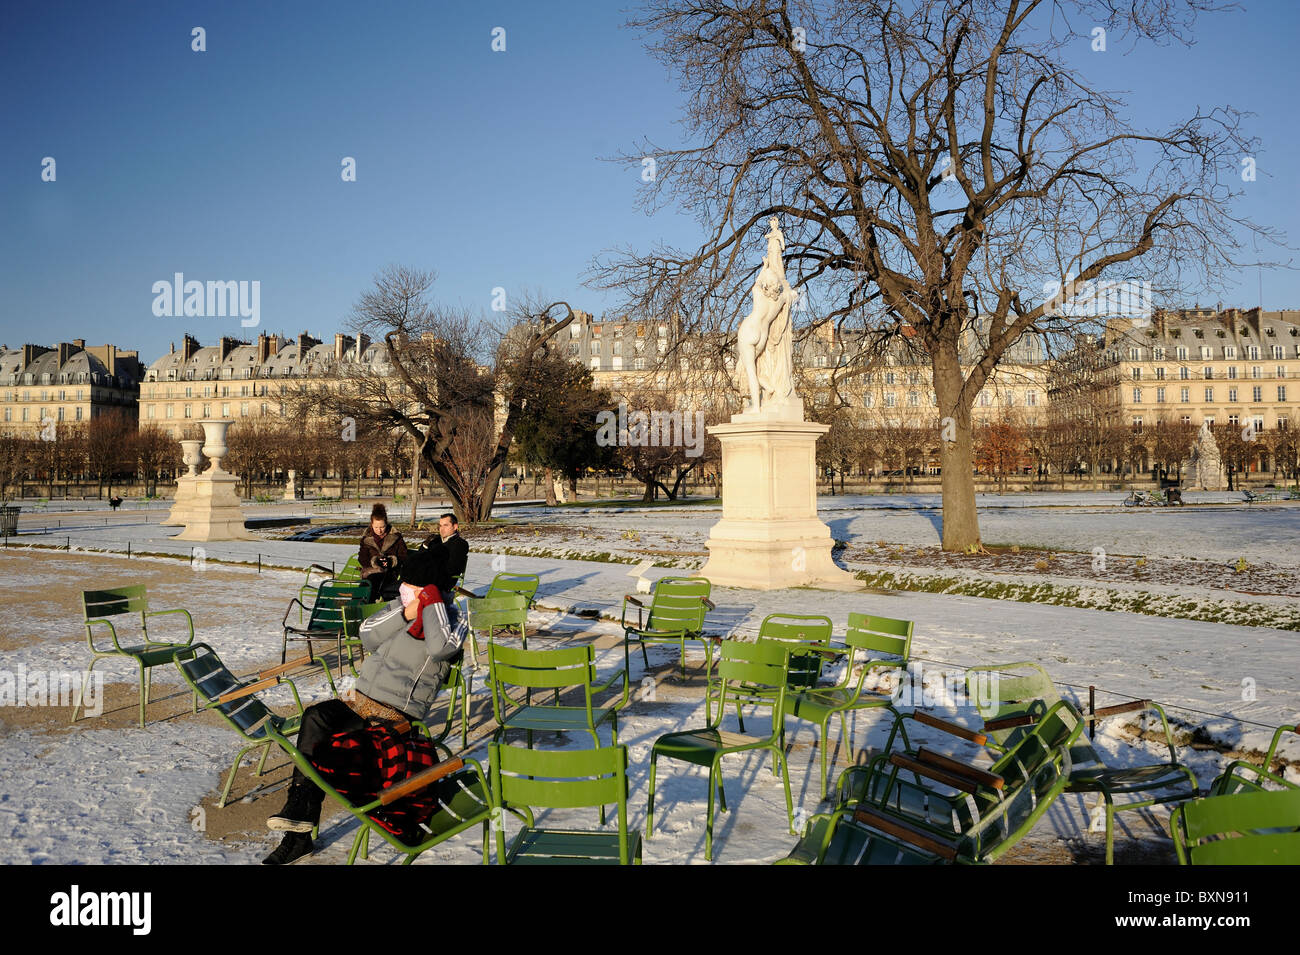 Paris France tourists at Tuileries garden in winter time - Stock Image